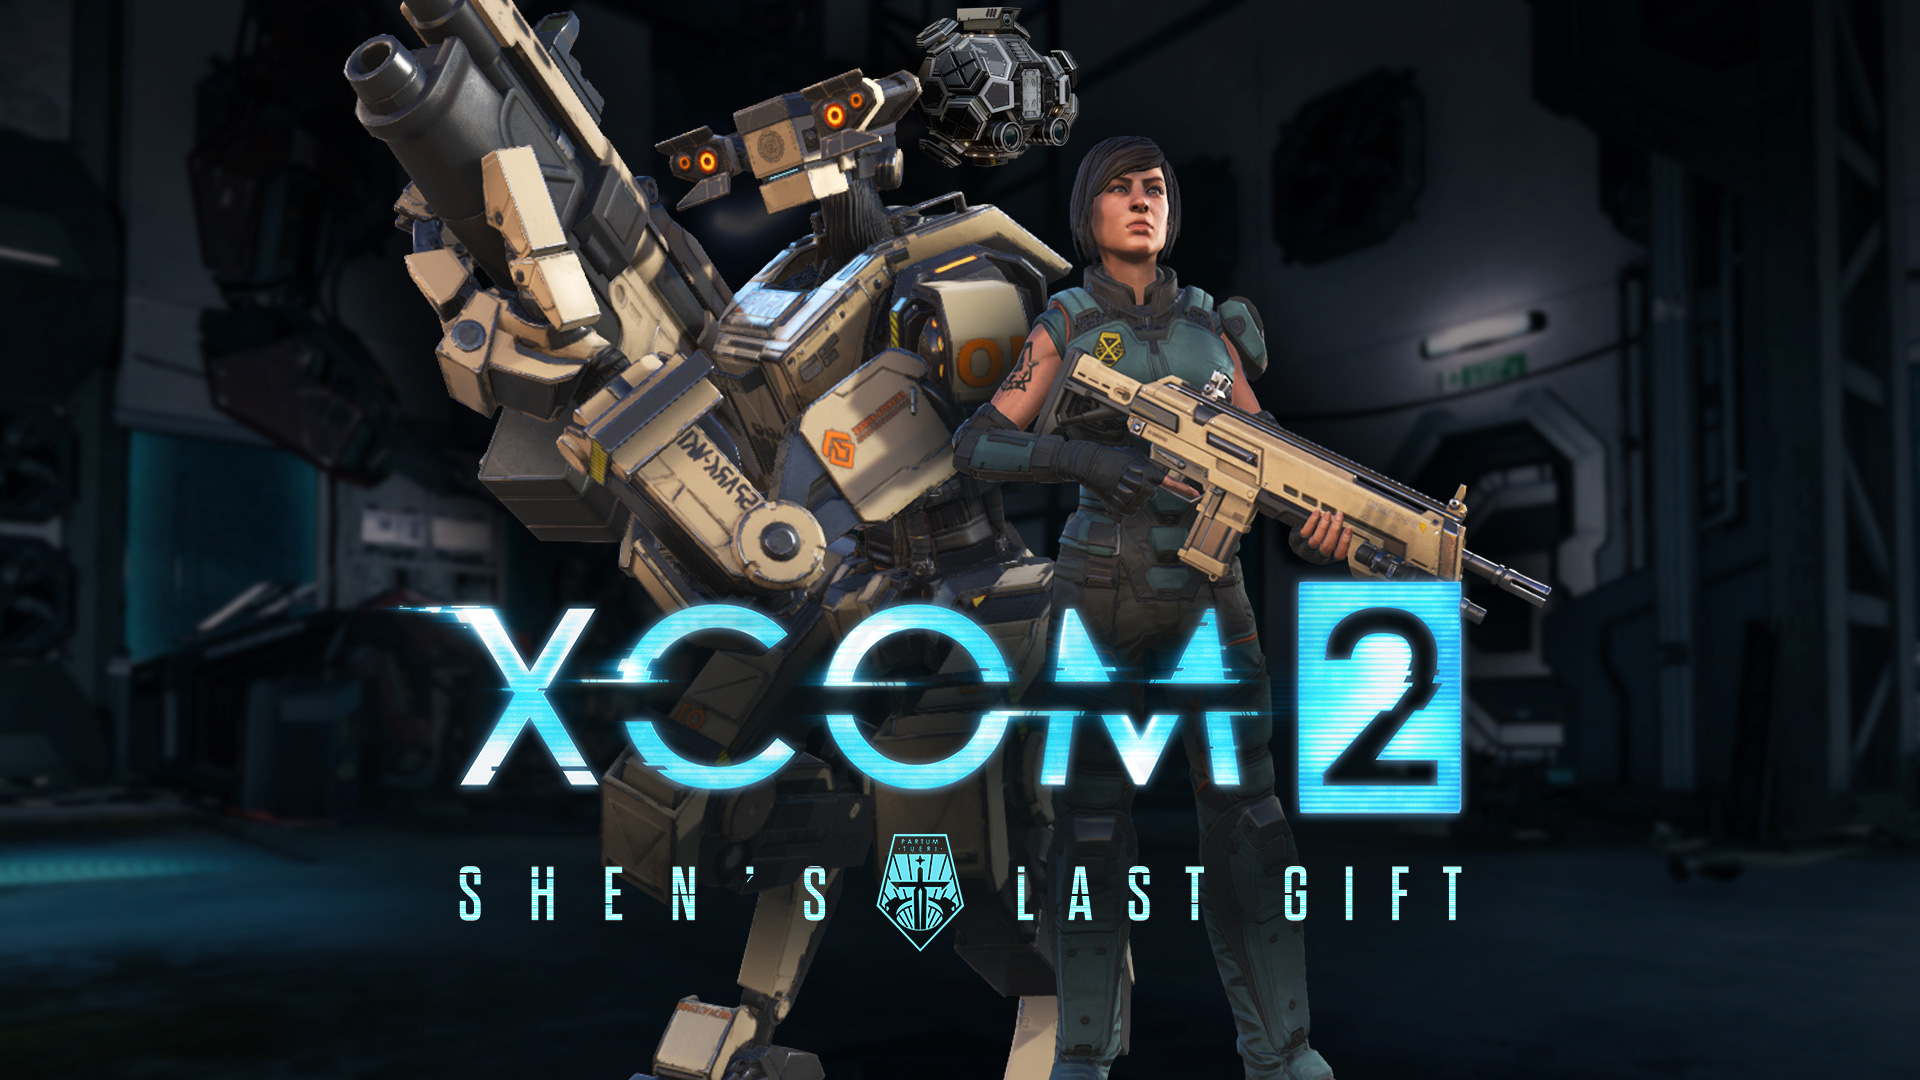 FR - Shen's Last Gift Comes to XCOM